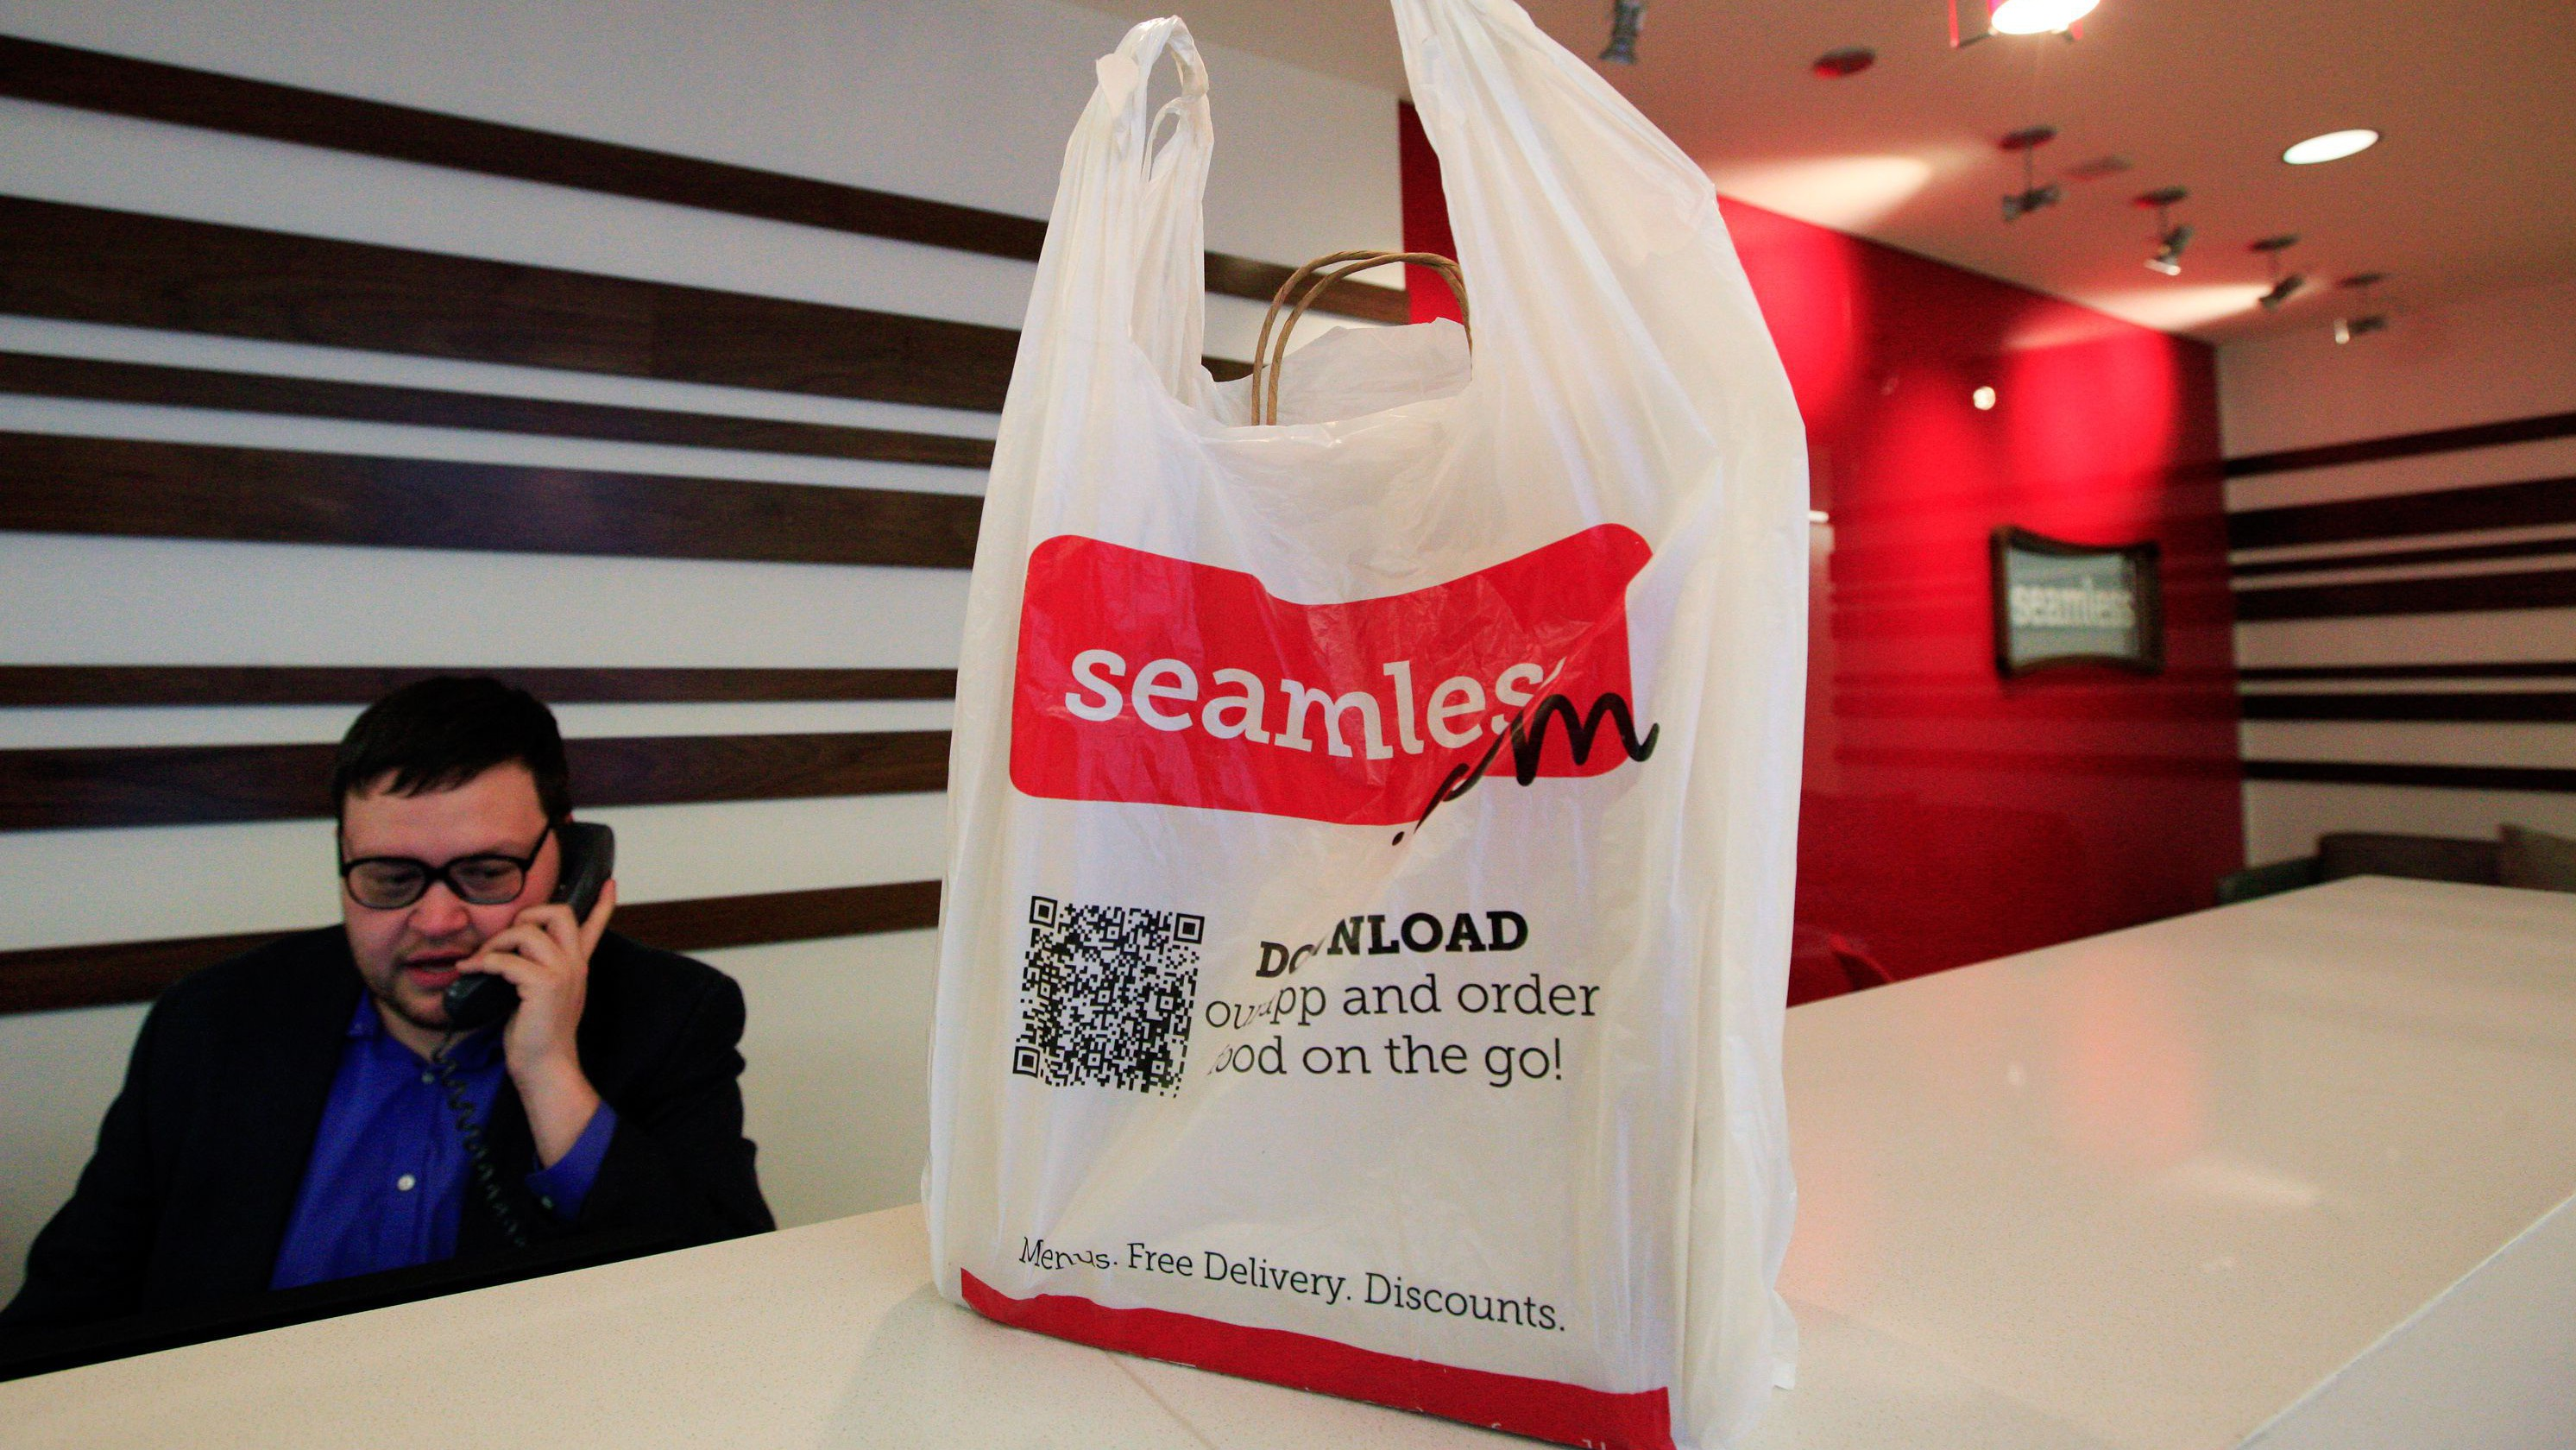 A man speaks on the phone next to a take-out bag at the reception desk at the offices of Seamless in New York January 10, 2012. Online delivery service Seamless is partnered with restaurants in over 30 major cities across the U.S. and Britain.  REUTERS/Brendan McDermid (UNITED STATES - Tags: BUSINESS FOOD) DRINK) - RTR2W4SO